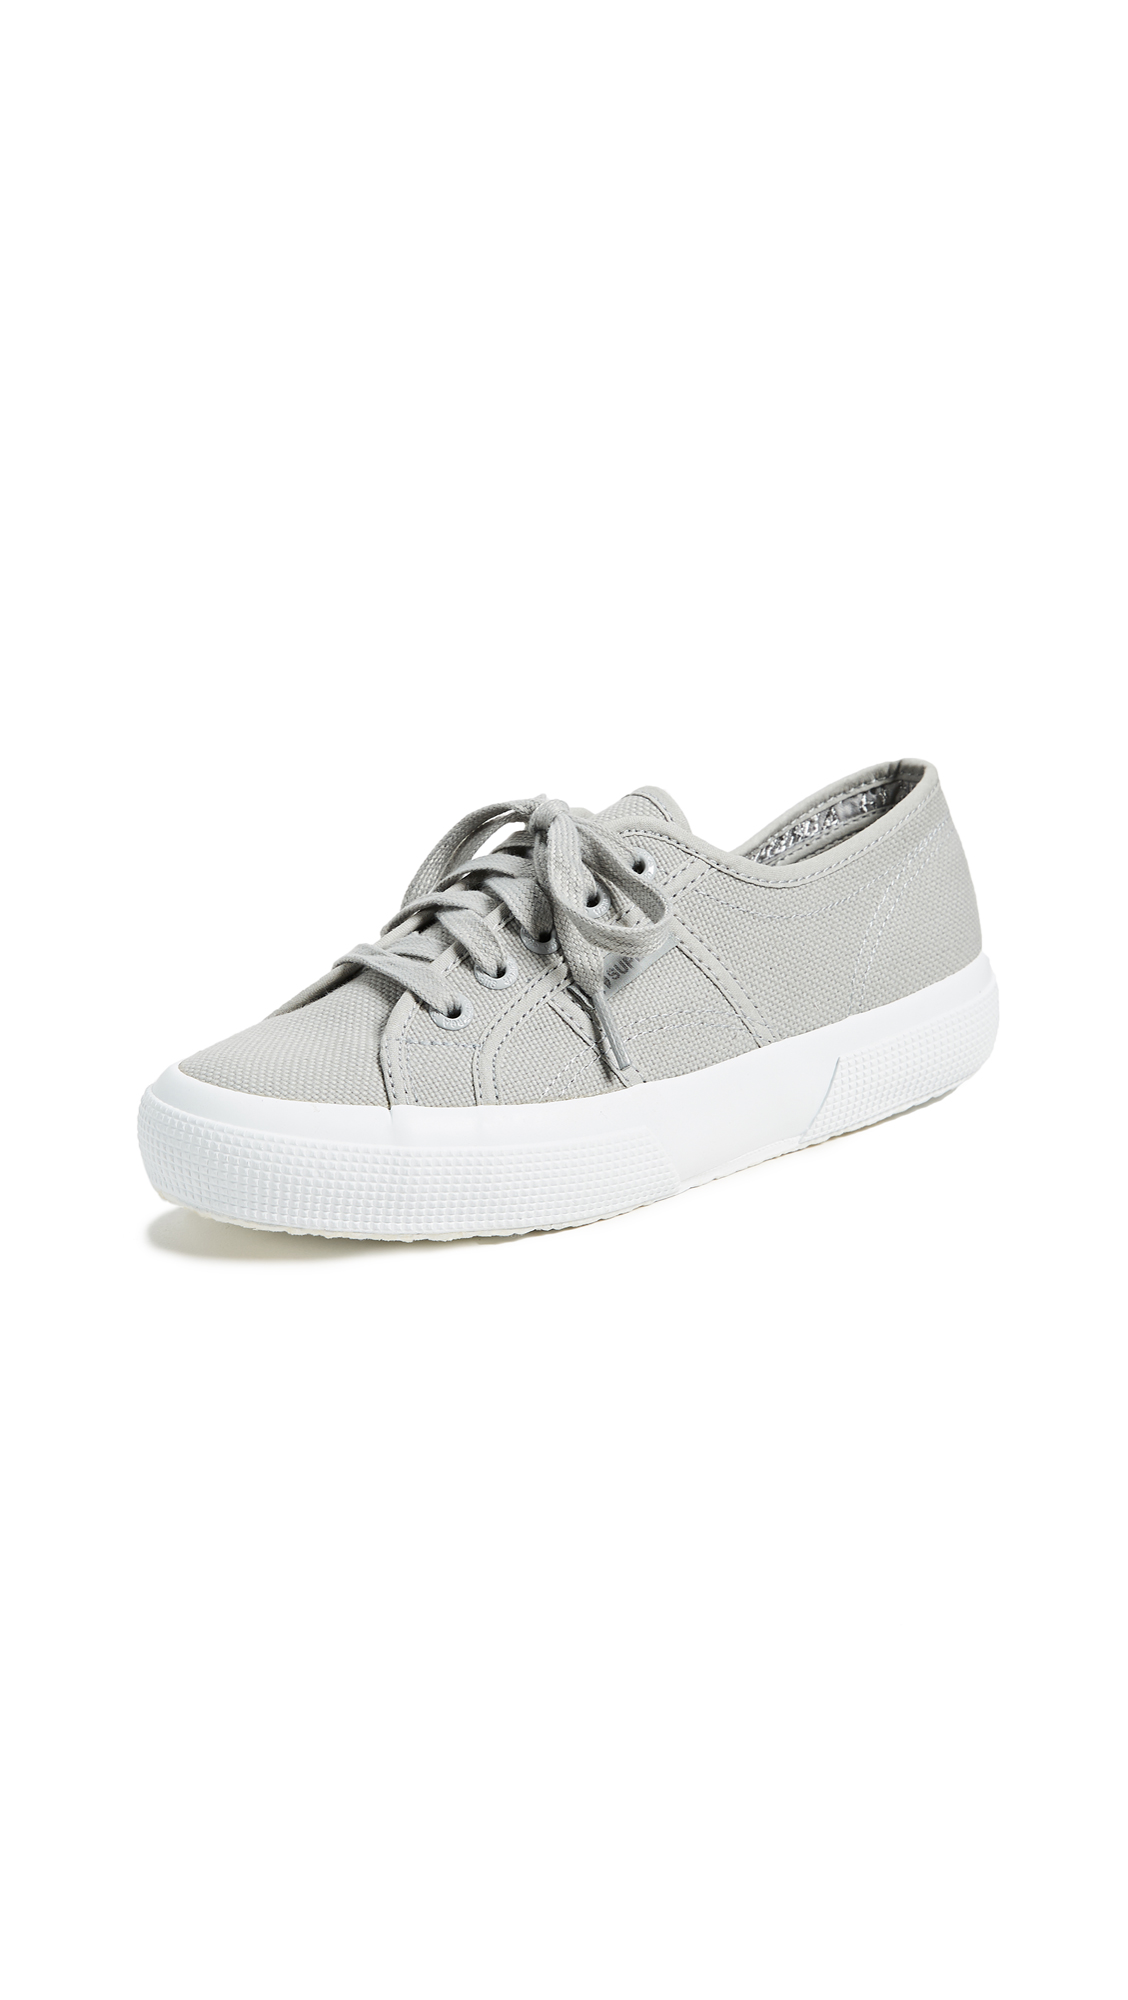 Superga 2750 Cotu Classic Sneakers - Light Grey